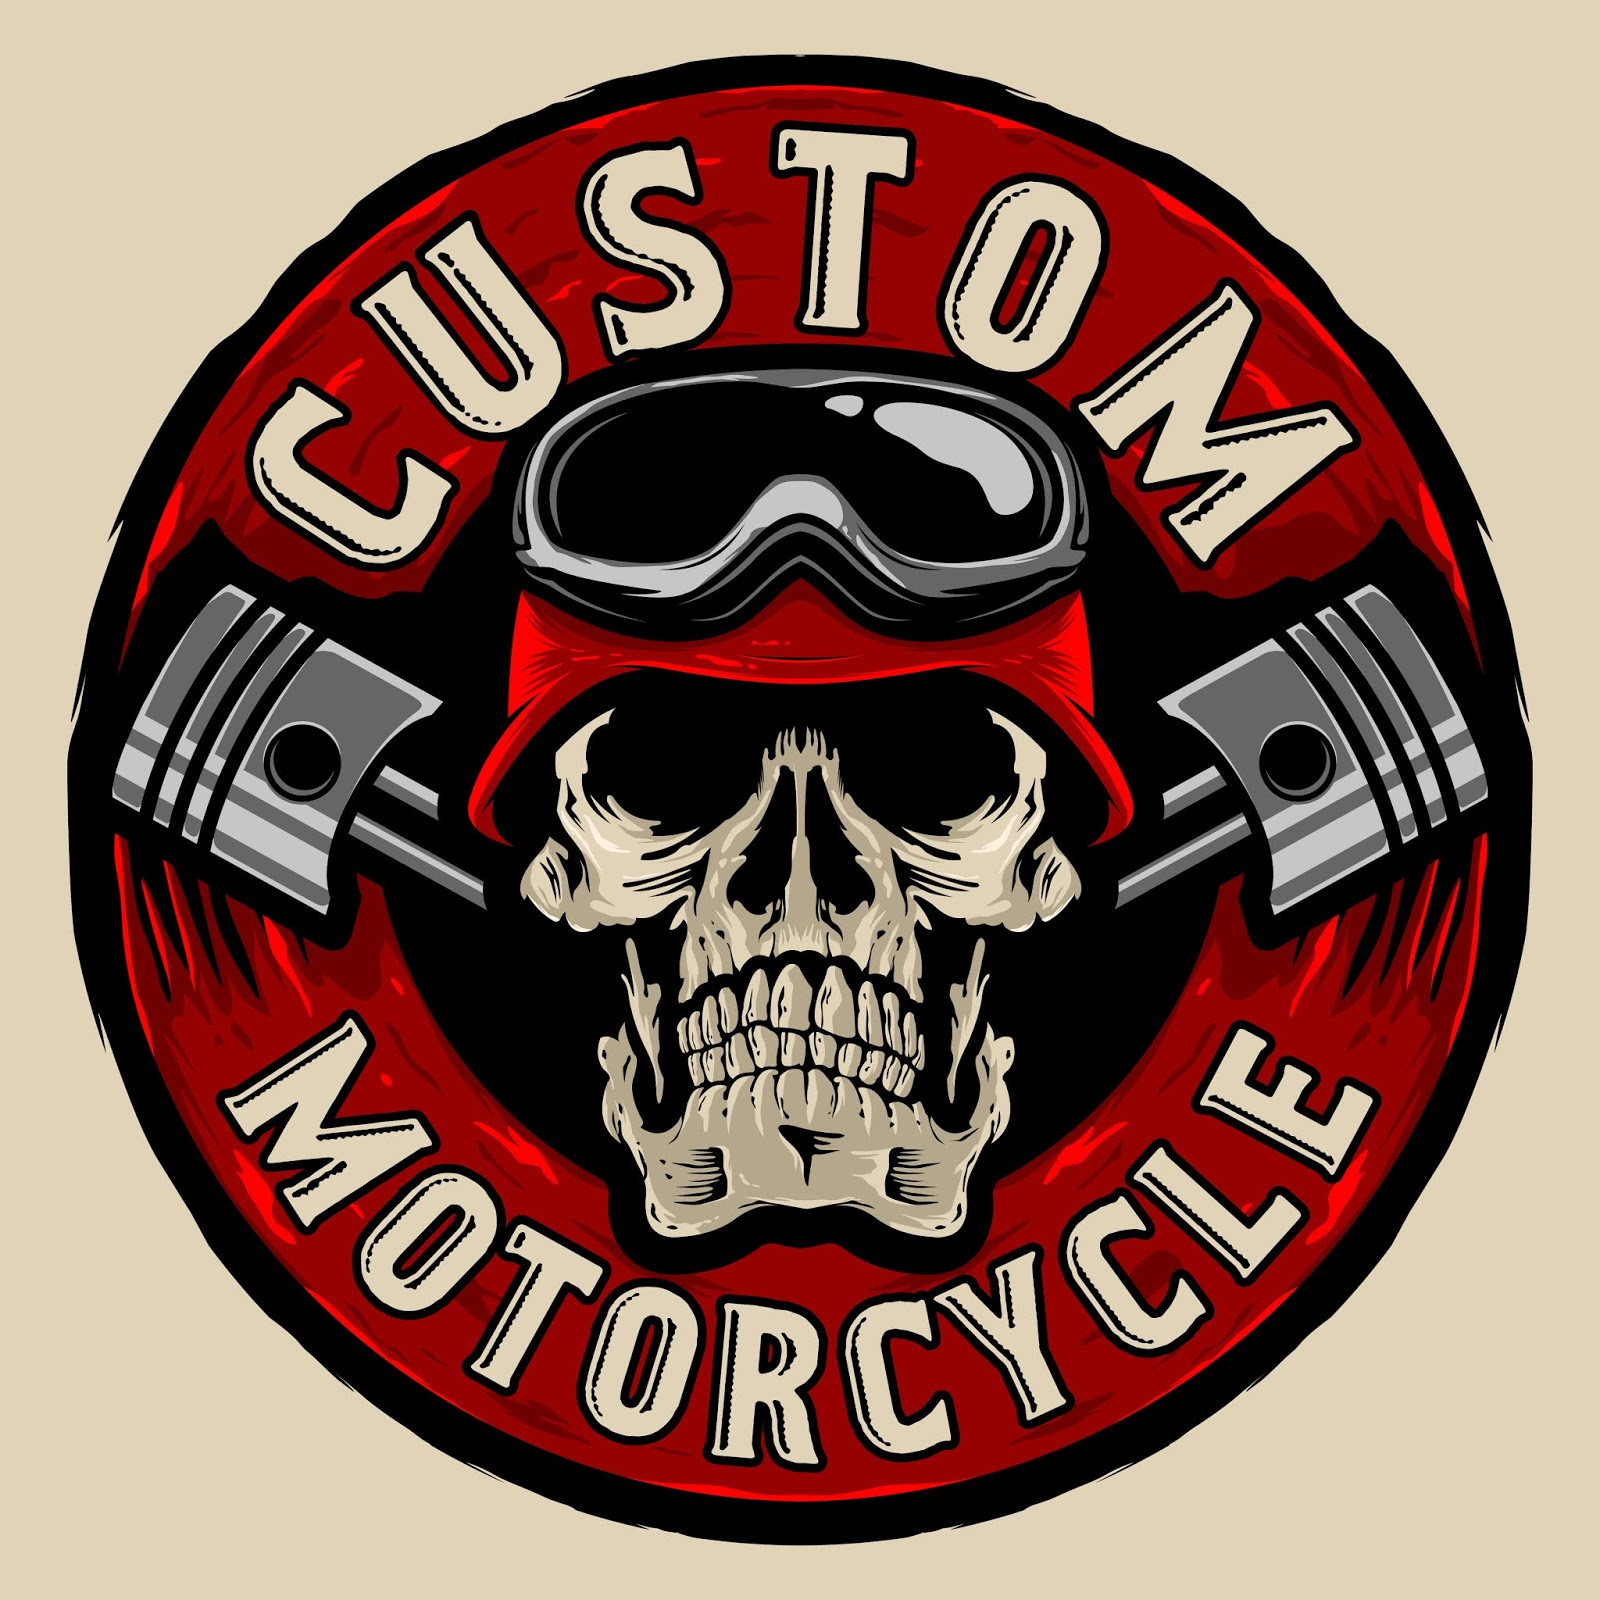 Skull Bikers Custom Logo Free Download Vector CDR, AI, EPS and PNG Formats